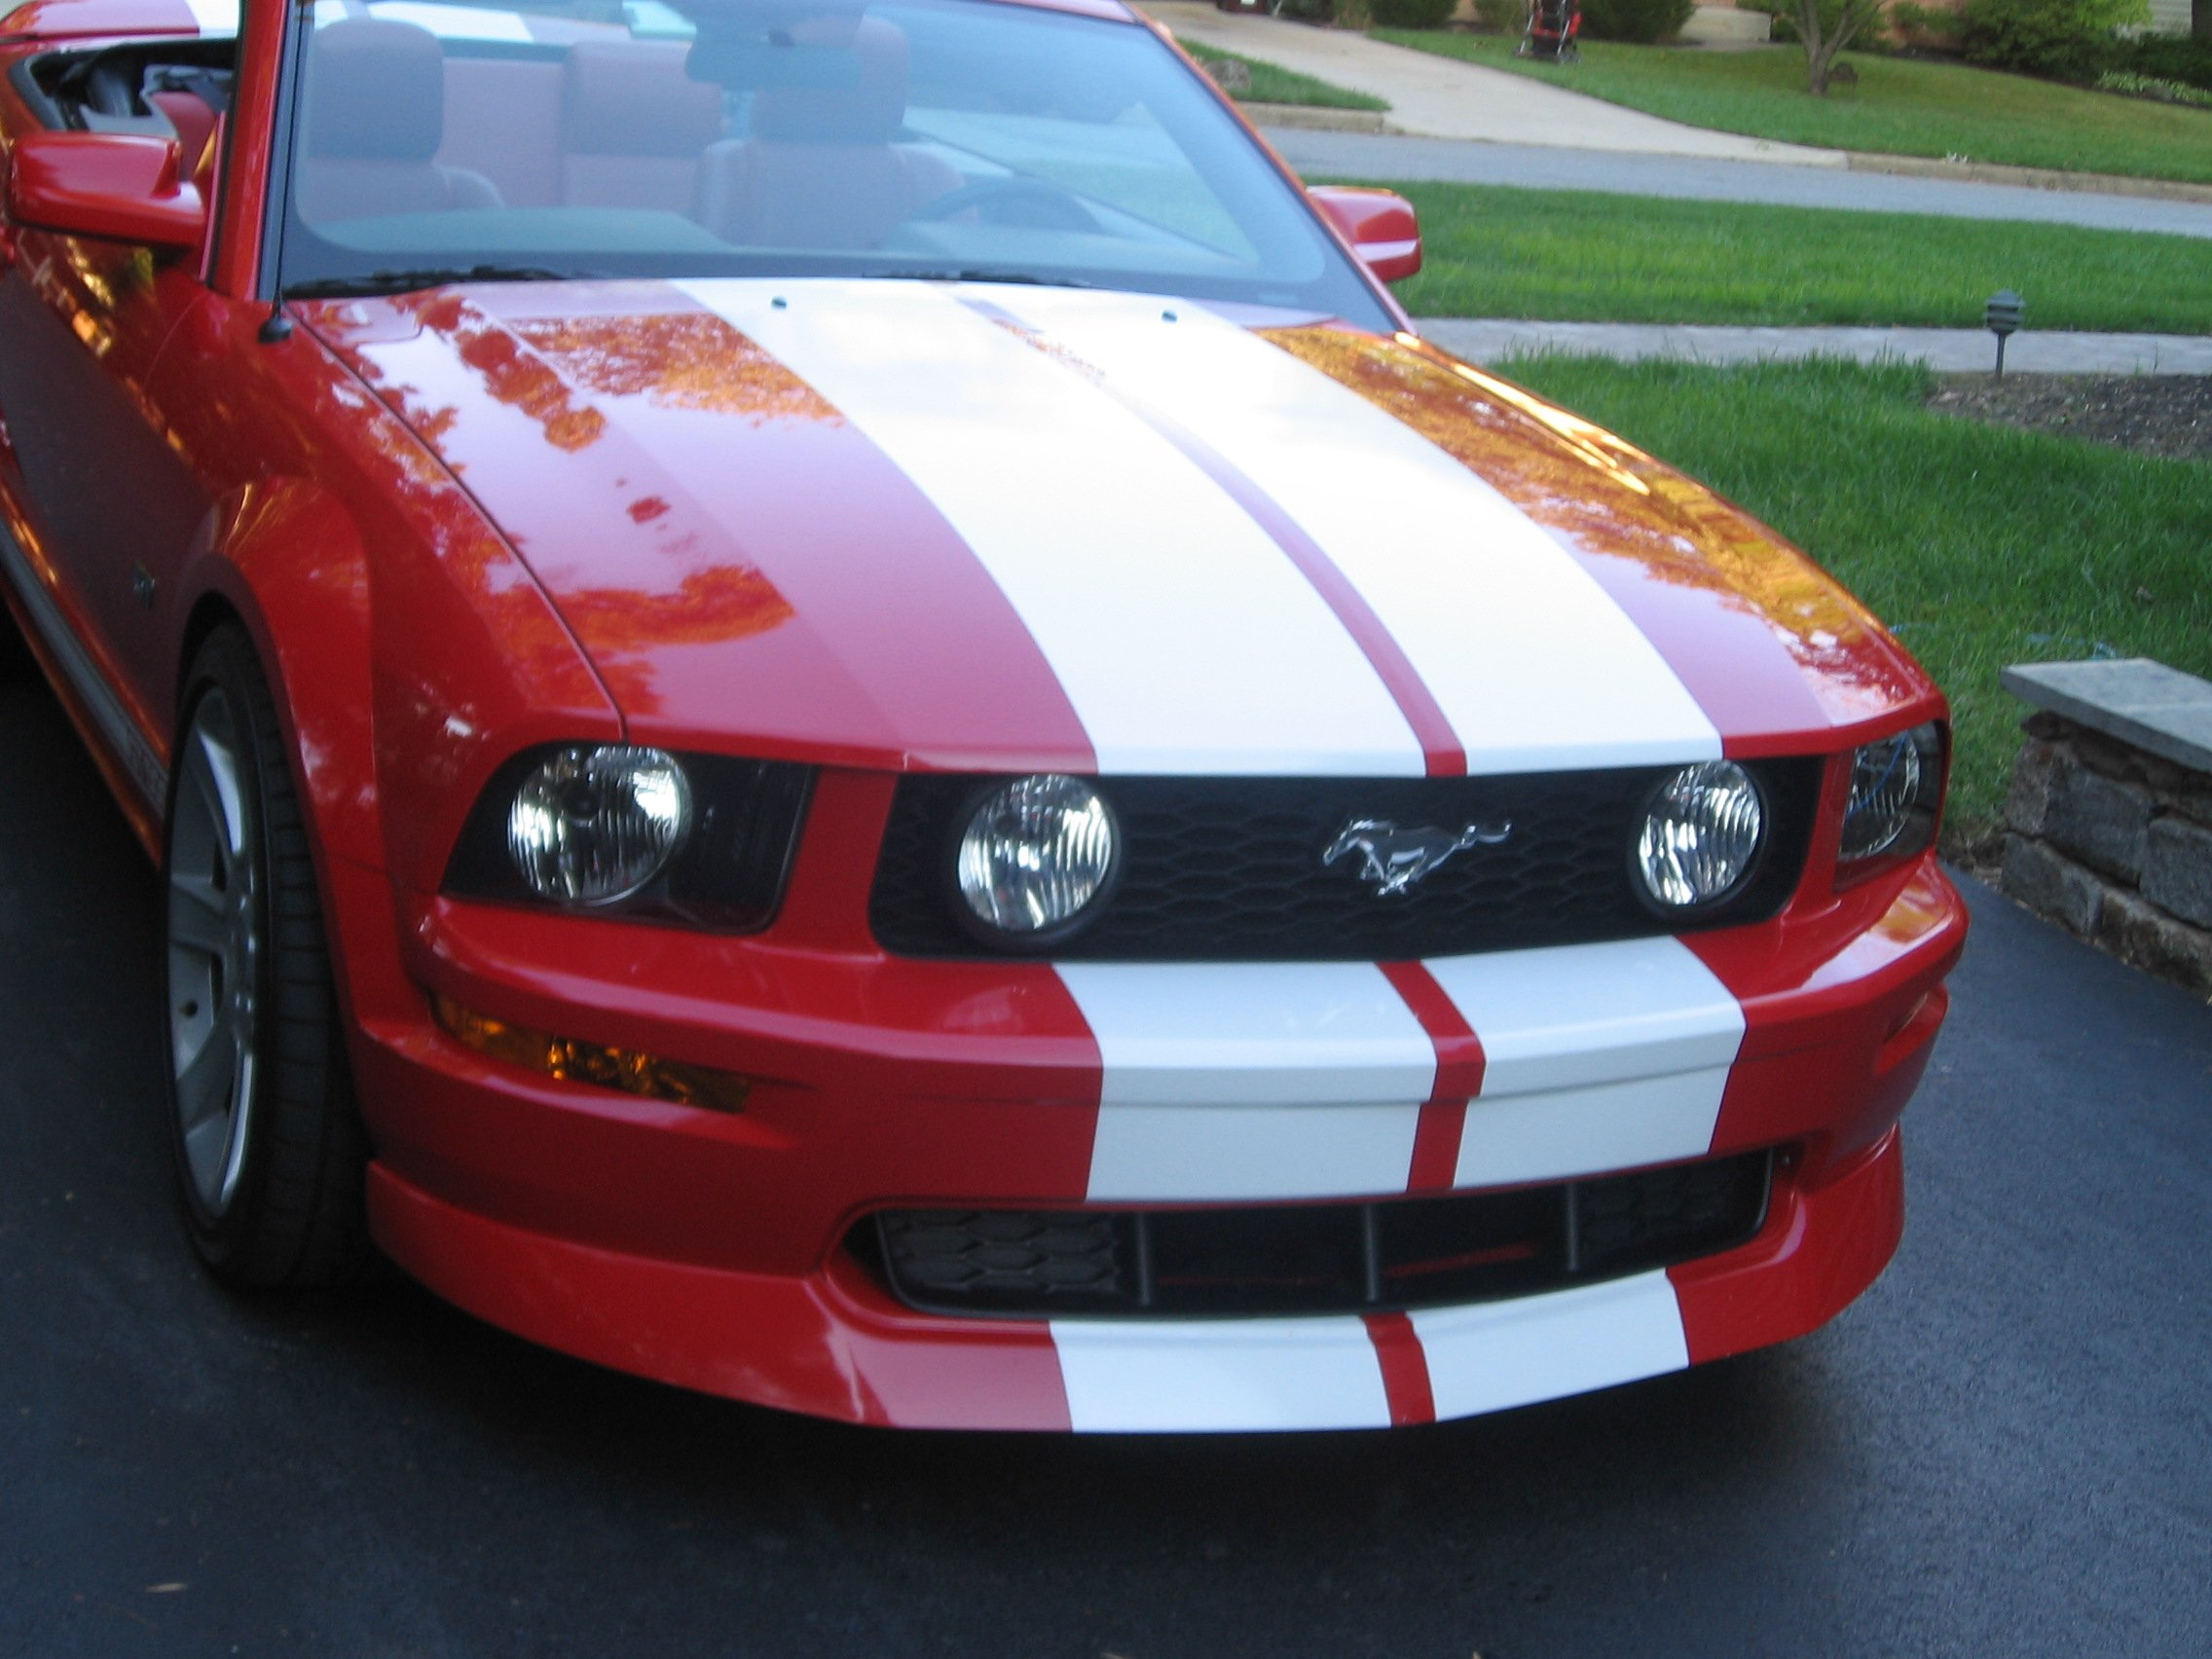 2005 Mustang GT... Is there a grill insert for the CDC ...